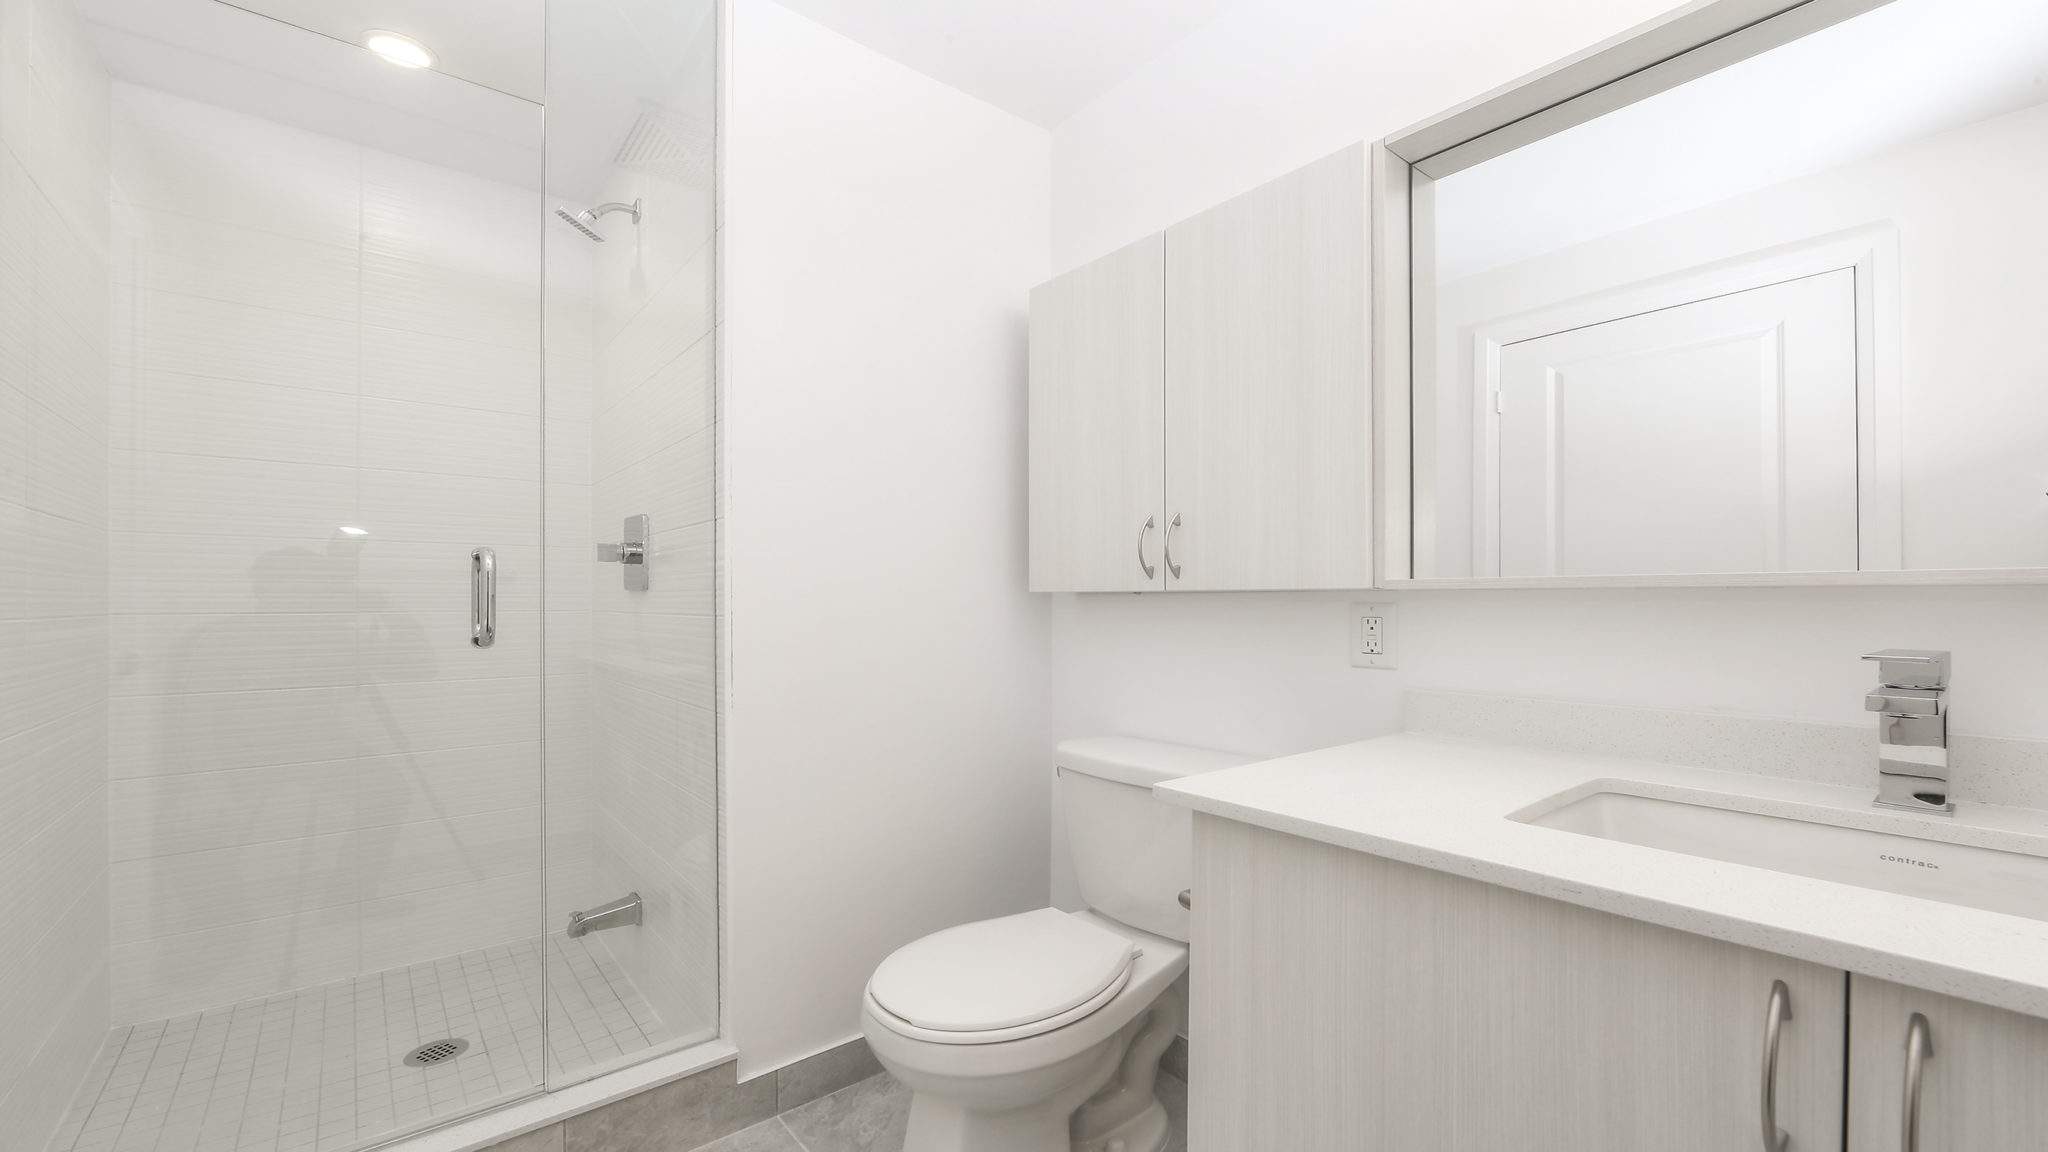 Image of master bath and shower, sink and mirror.